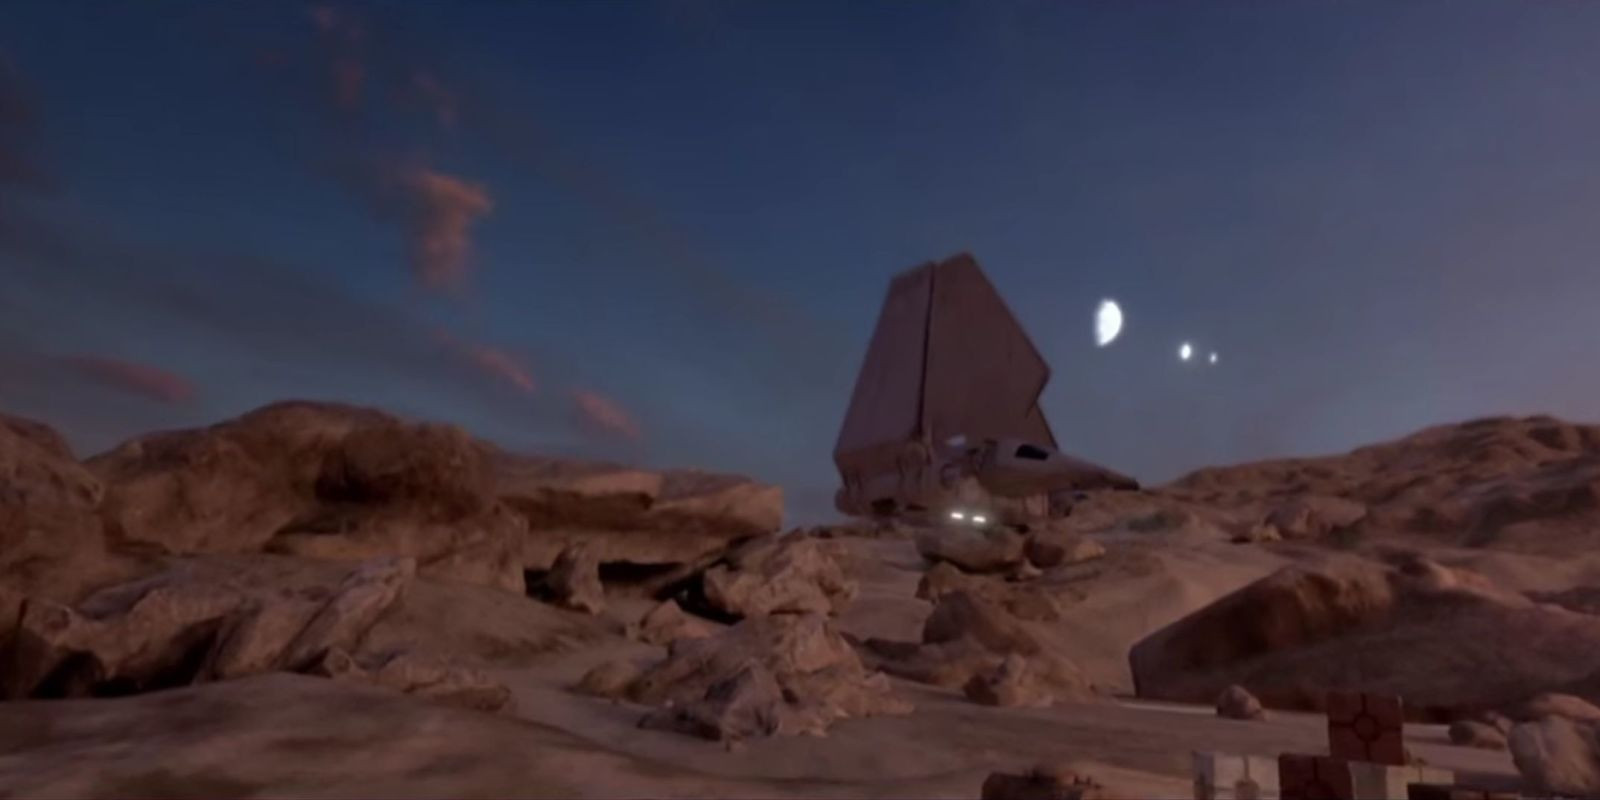 Best ideas about Star Wars Landscape . Save or Pin Soon You ll Be Able to Experience Star Wars In Virtual Now.